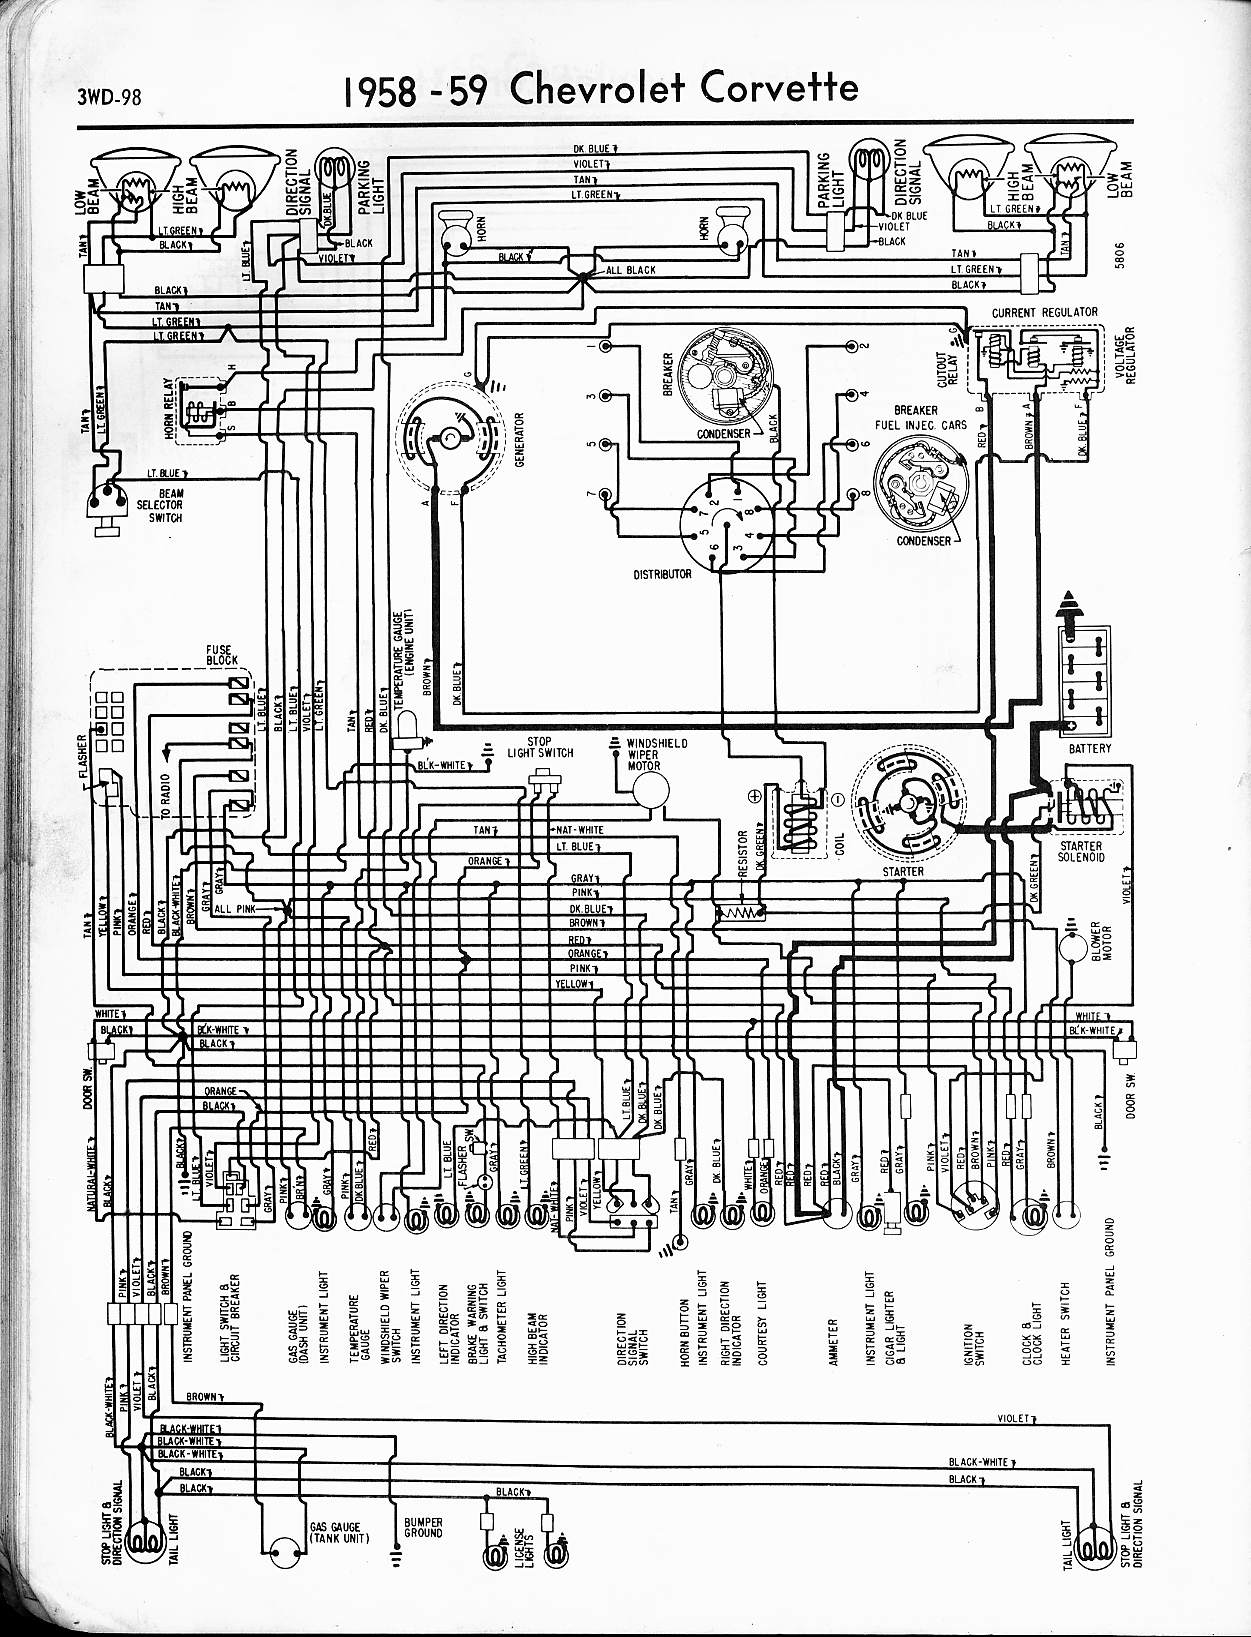 Phenomenal 1958 Chevrolet Steering Column Wiring Wiring Diagram Wiring Cloud Itislusmarecoveryedborg